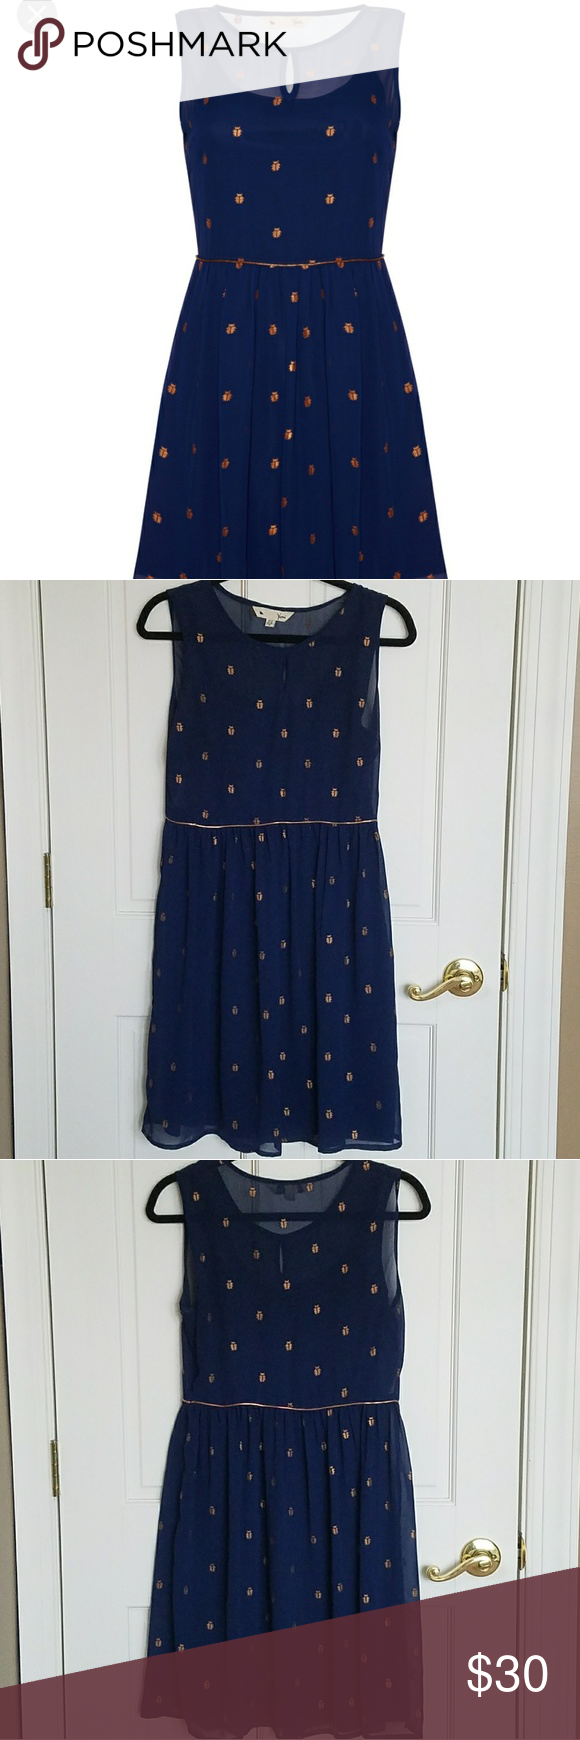 Yumi blue u gold flowy sleeveless dress size m yumi blue and